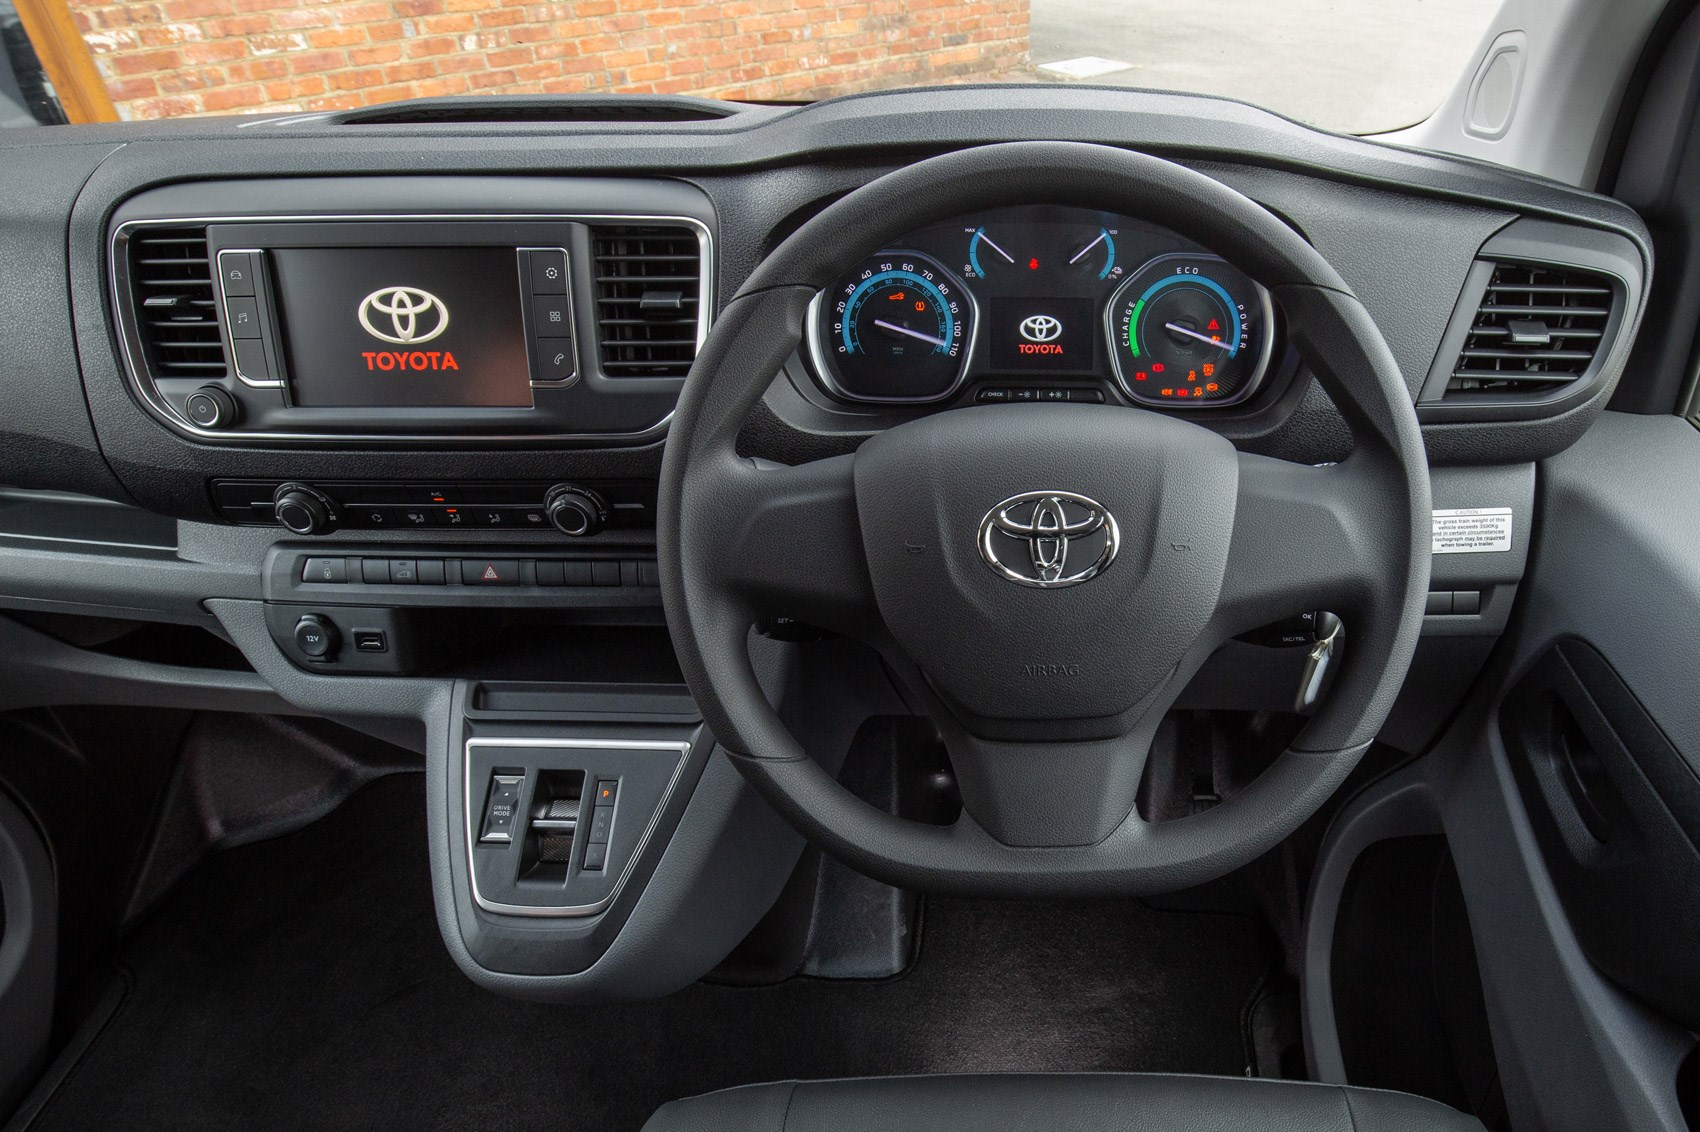 Toyota Proace Electric van review, cab interior, driver's view of steering wheel and dashboard